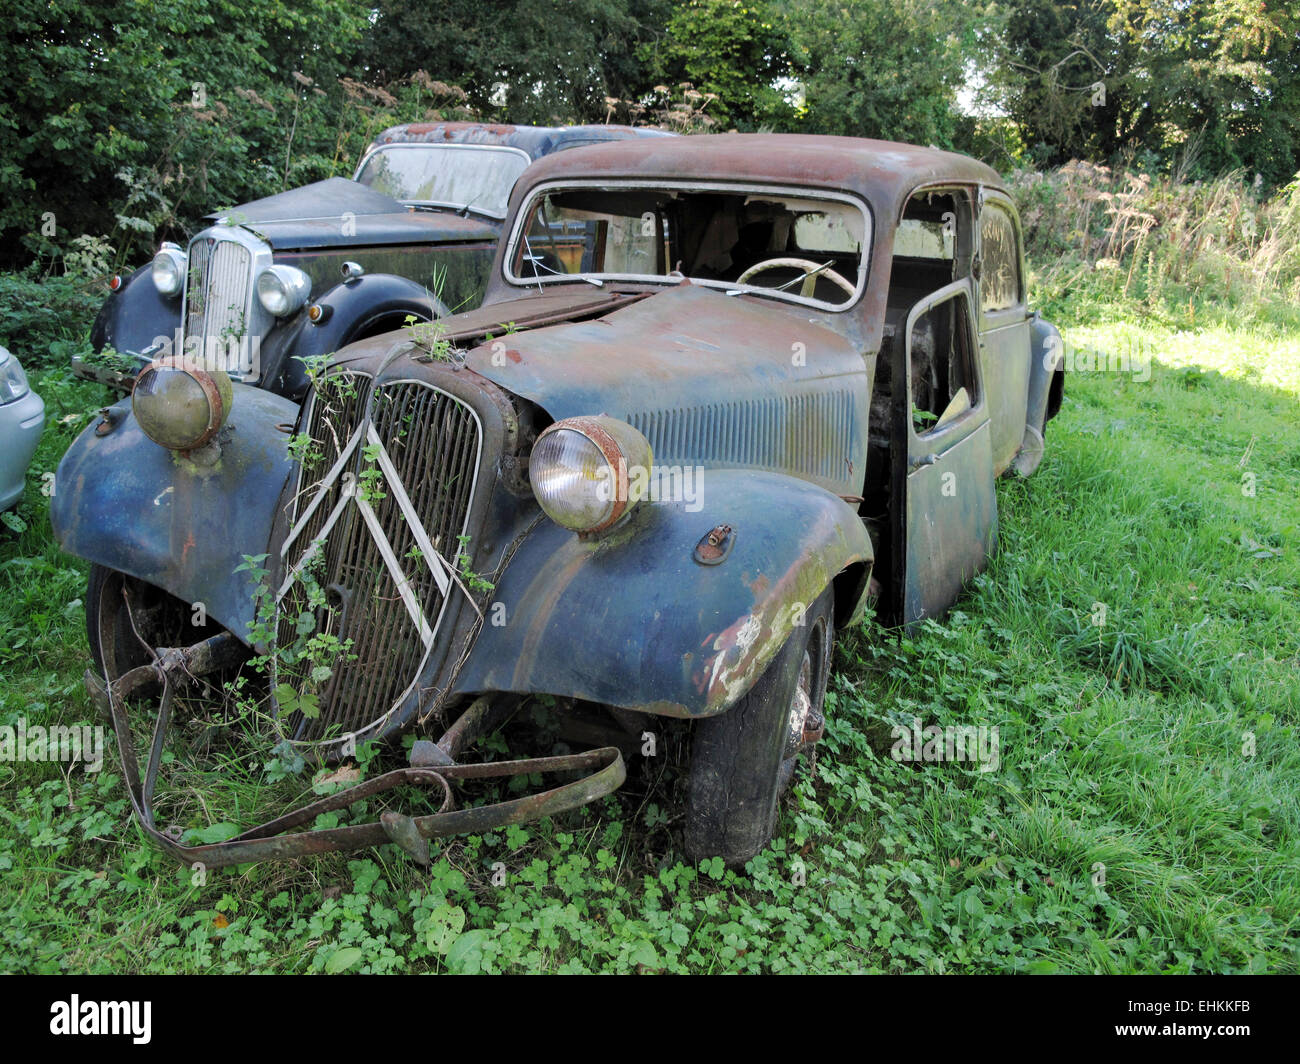 Derelict Cars in a Field - Stock Image